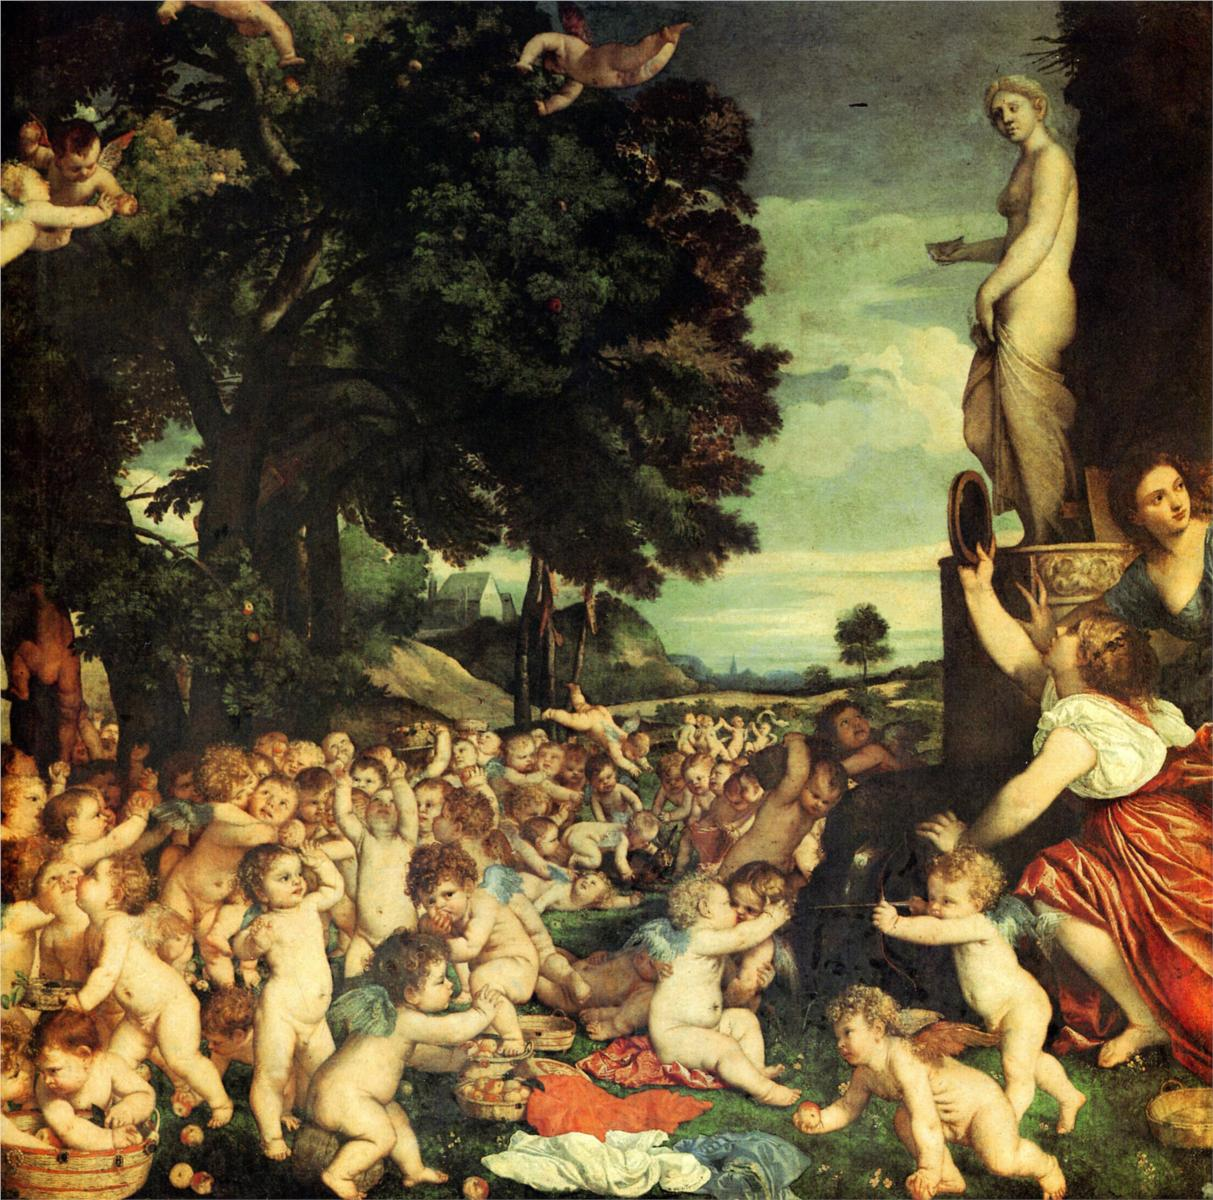 The Worship of Aphrodite by Titian 1518